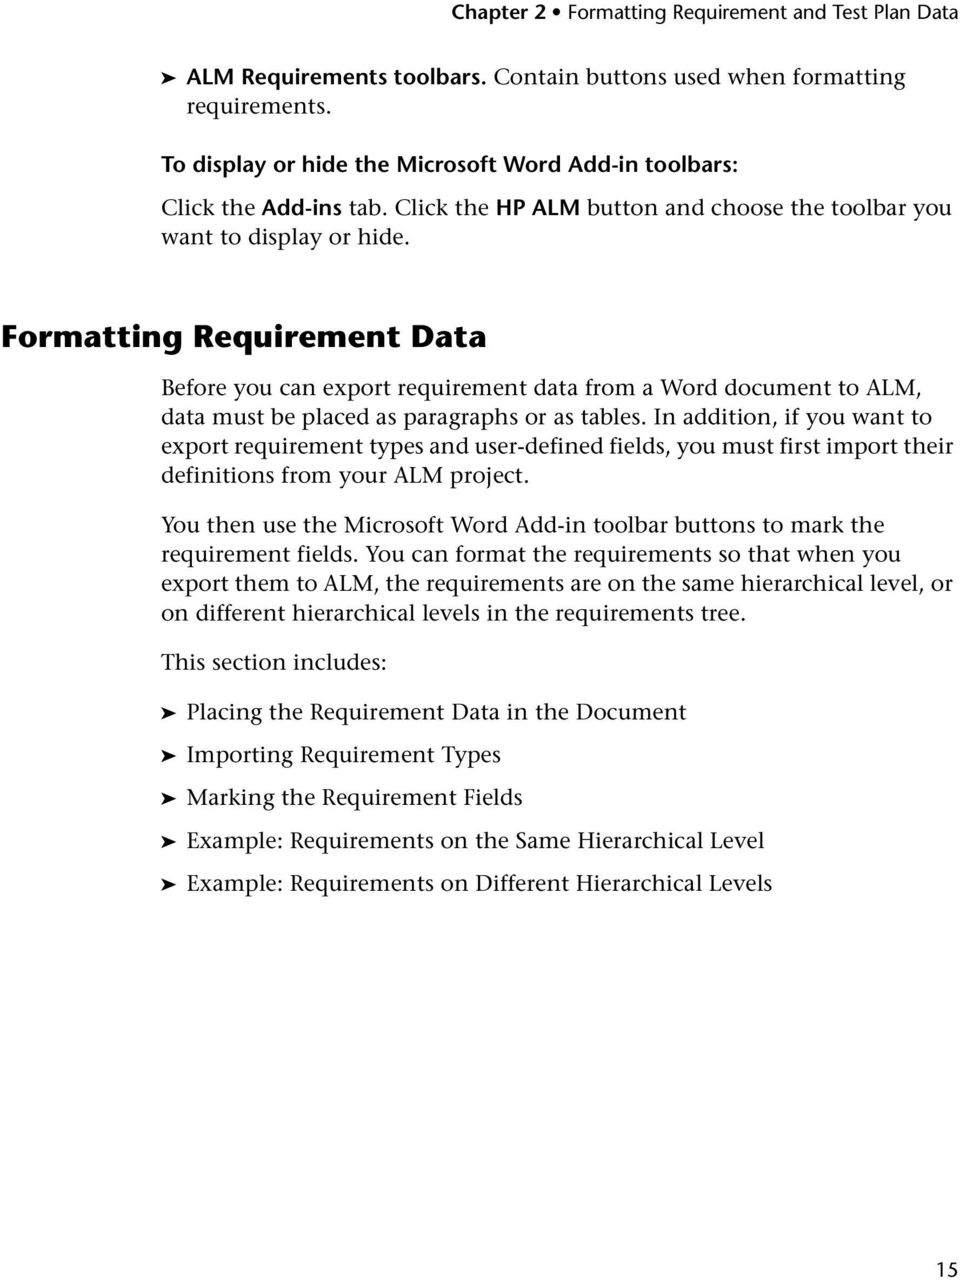 Formatting Requirement Data Before you can export requirement data from a Word document to ALM, data must be placed as paragraphs or as tables.